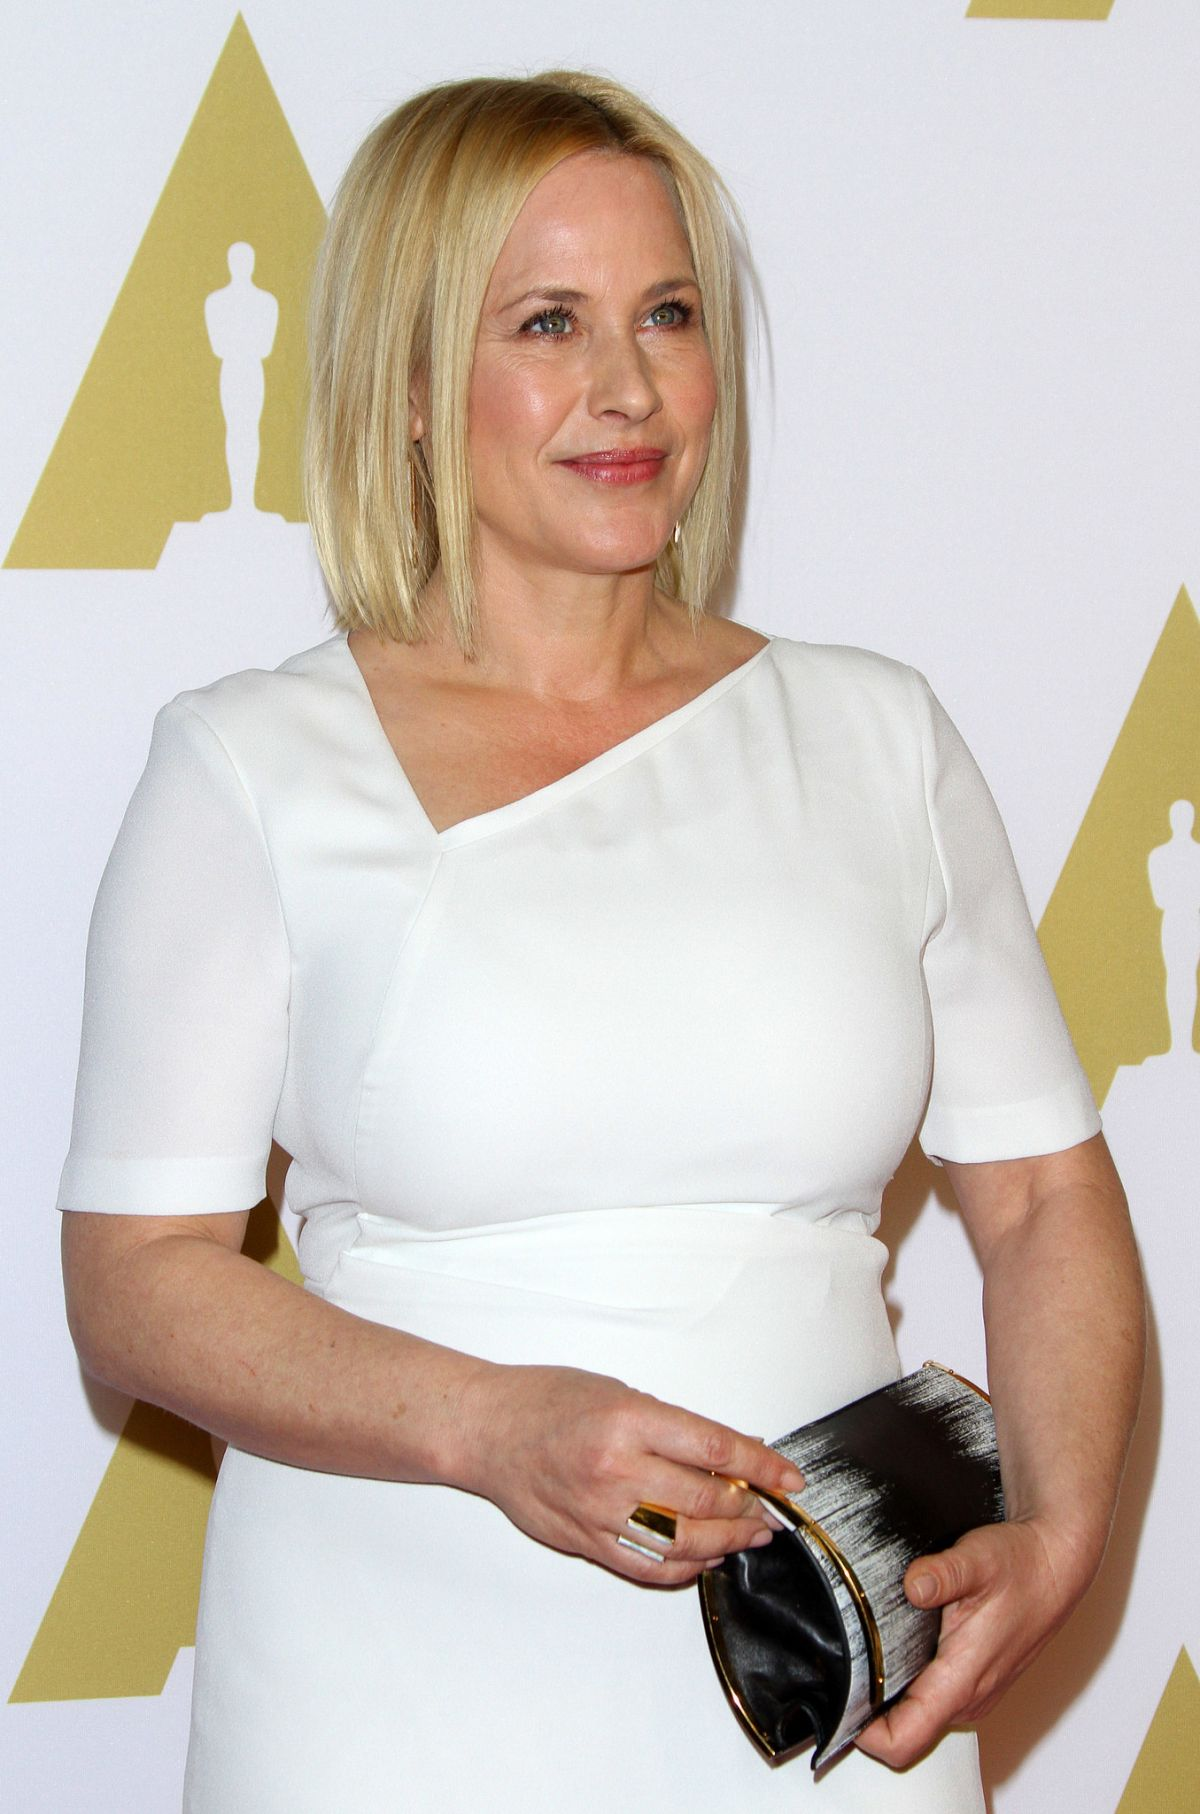 PATRICIA ARQUETTE at Academy Awards 2015 Nominee Luncheon in Beverly Hills